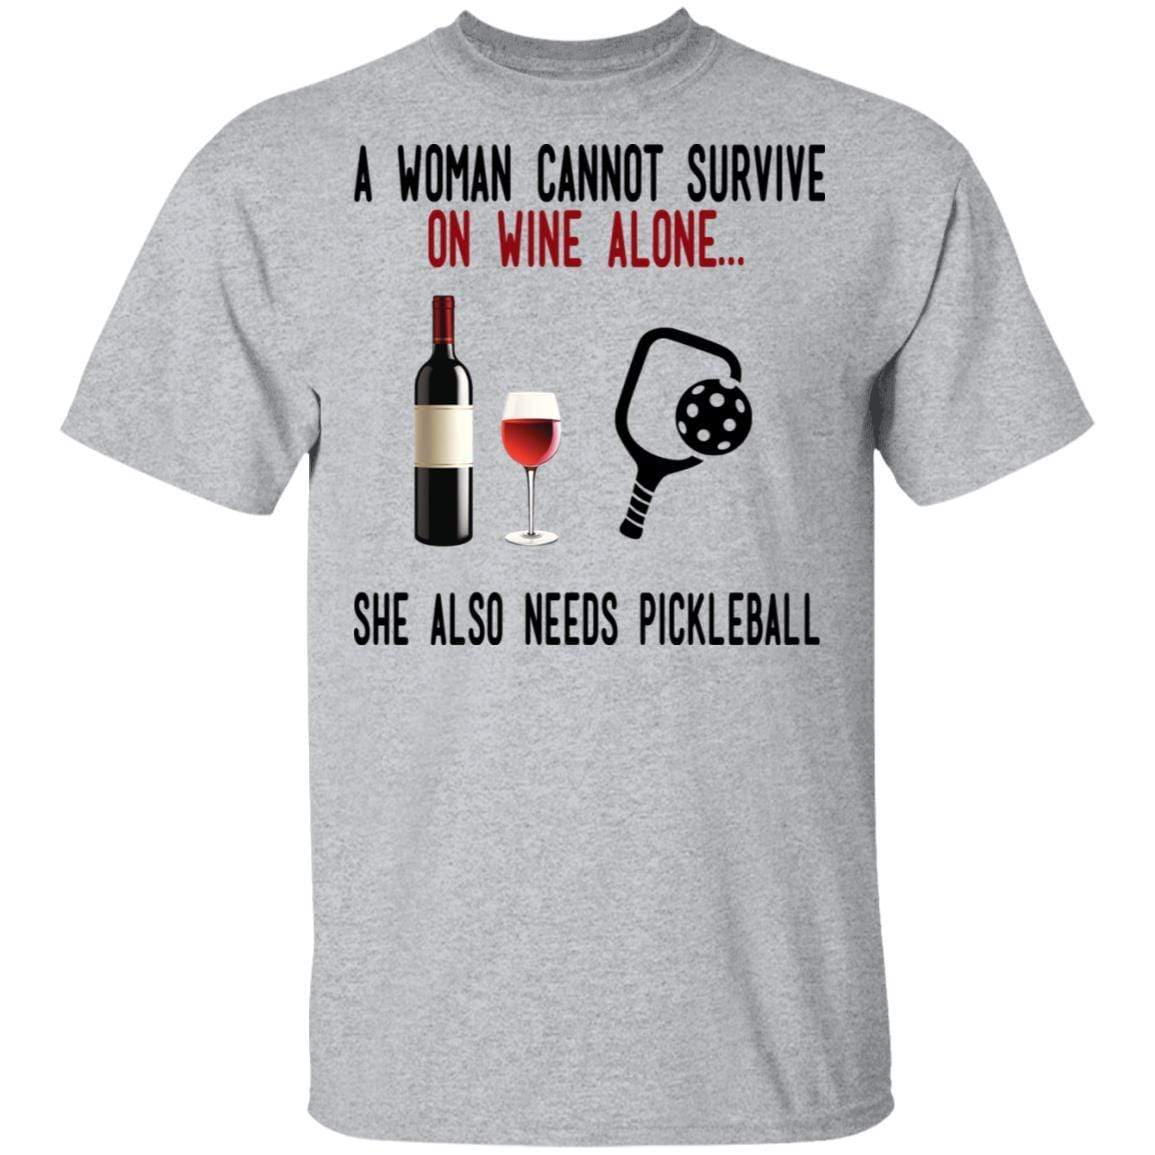 A Woman Cannot Survive On Wine Alone She Also Needs Pickleball T-Shirts, Hoodies 1049-9972-86569608-48200 - Tee Ript